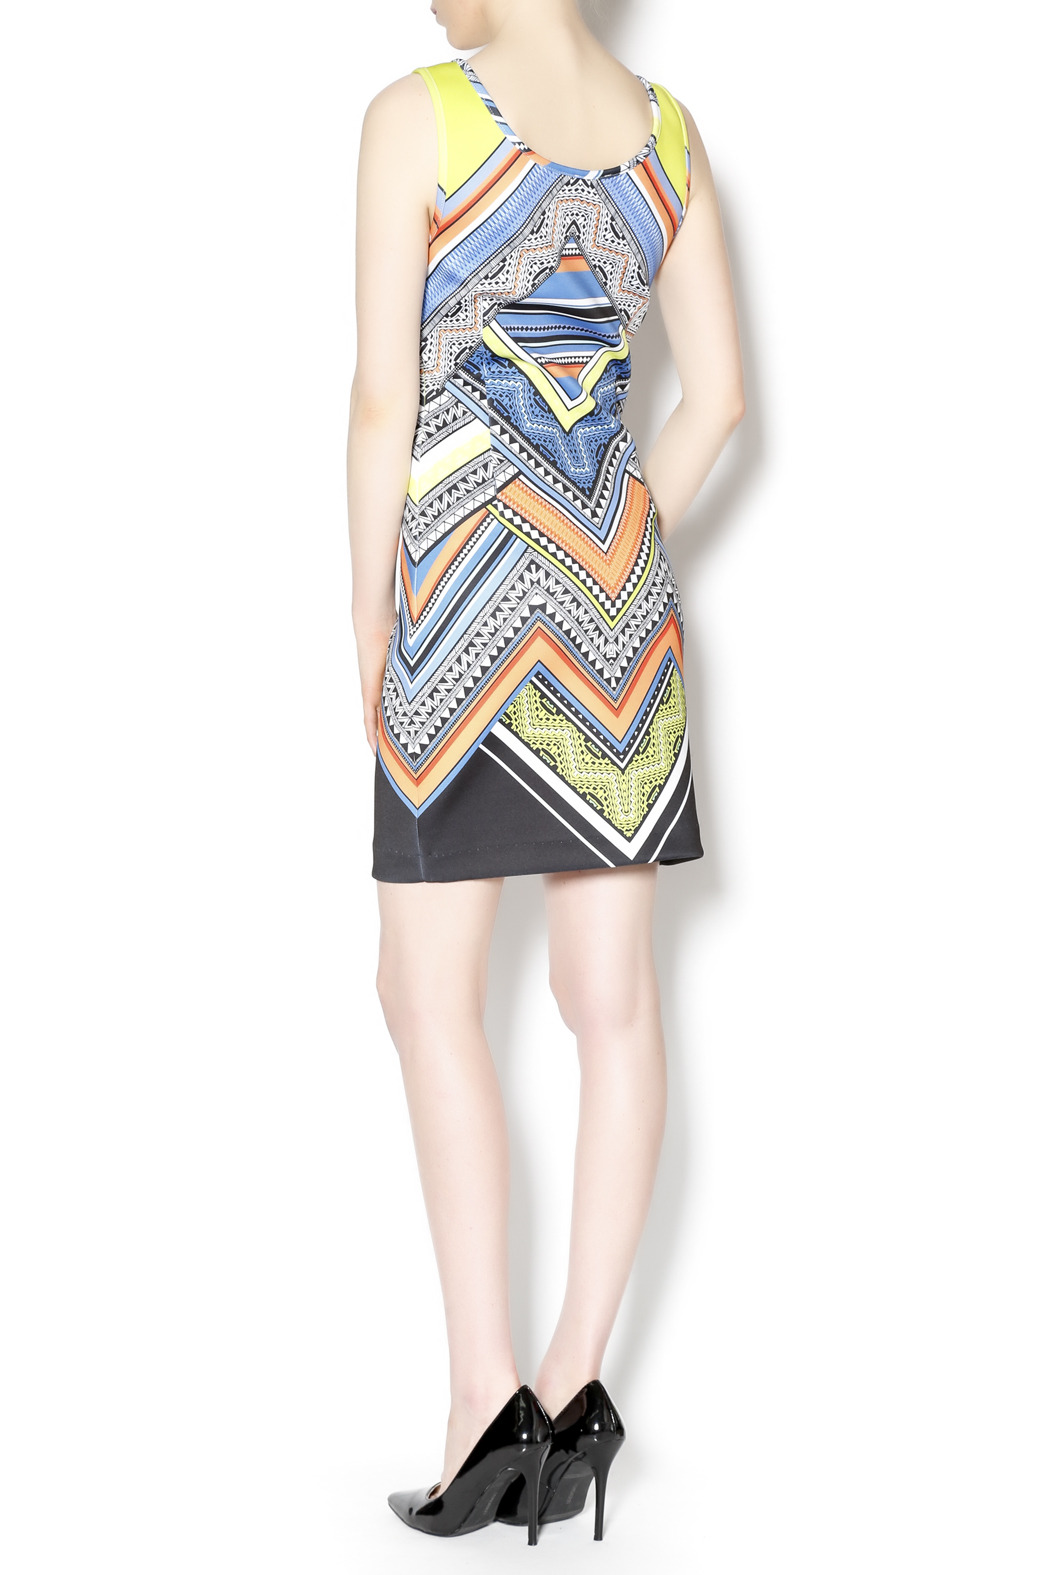 Laundry multicolored tank dress - Side Cropped Image